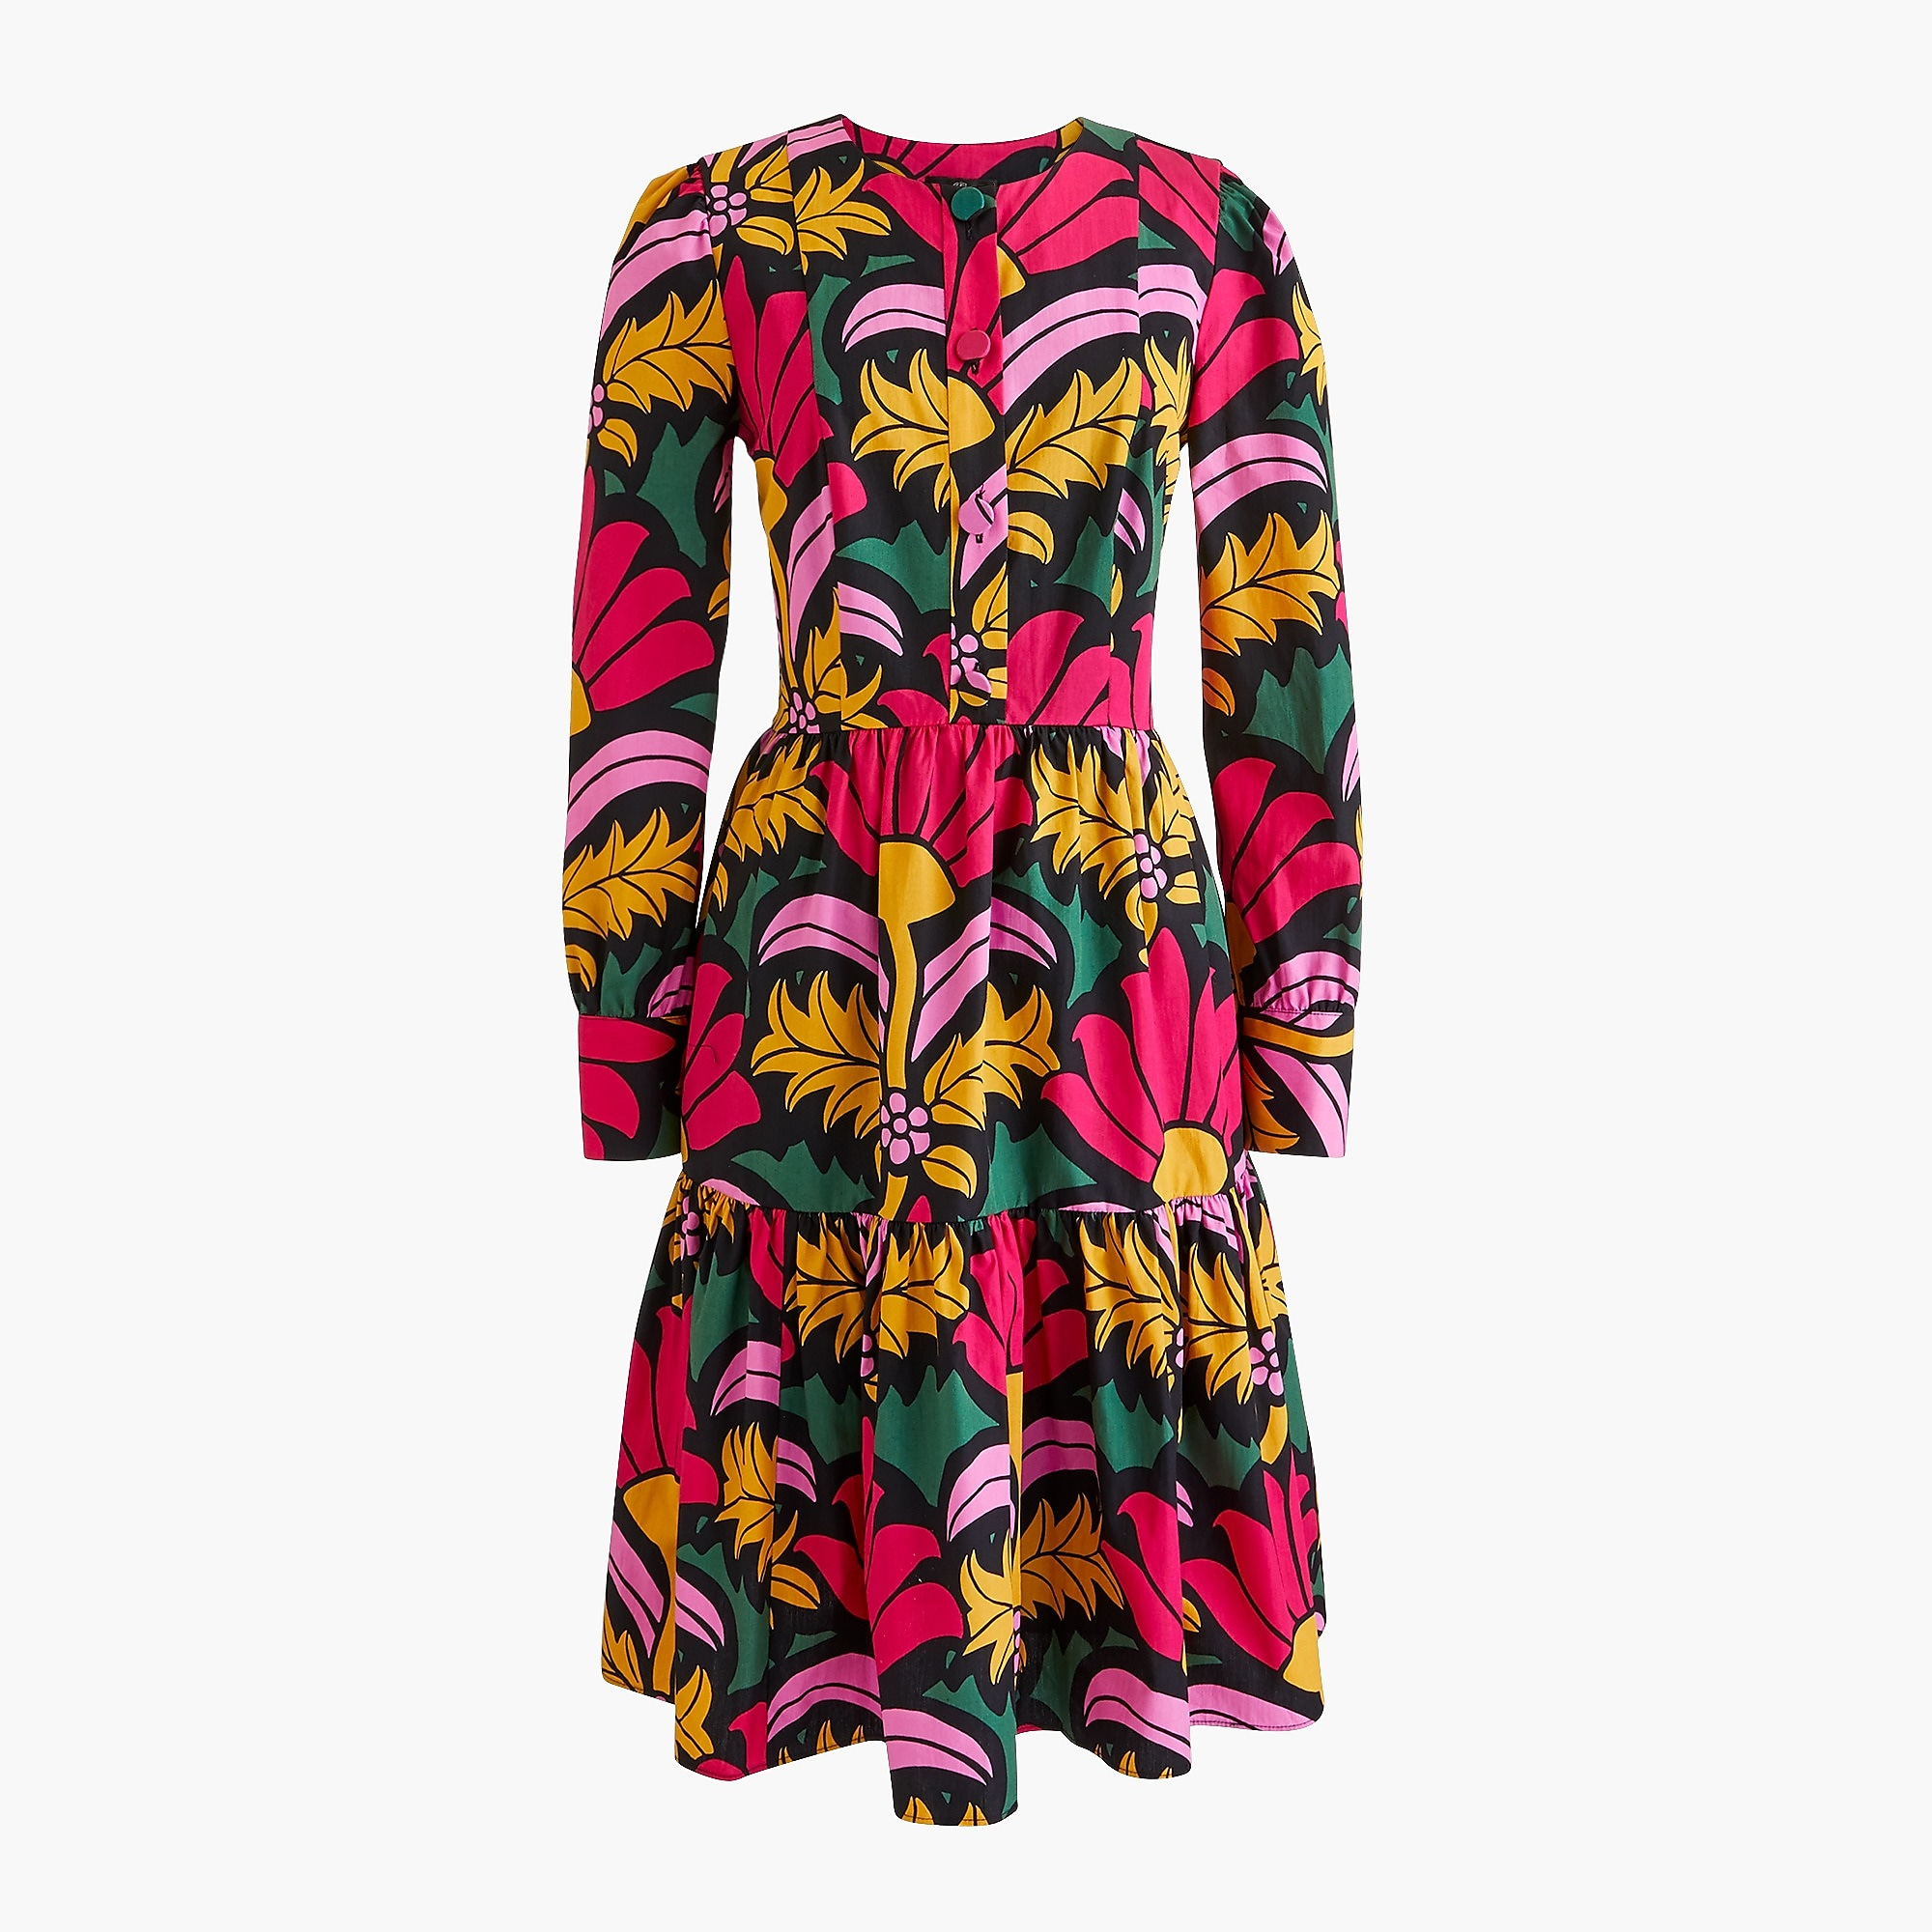 Fiori Grandi.J Crew Tiered Dress In Ratti Grandi Fiori Print For Women